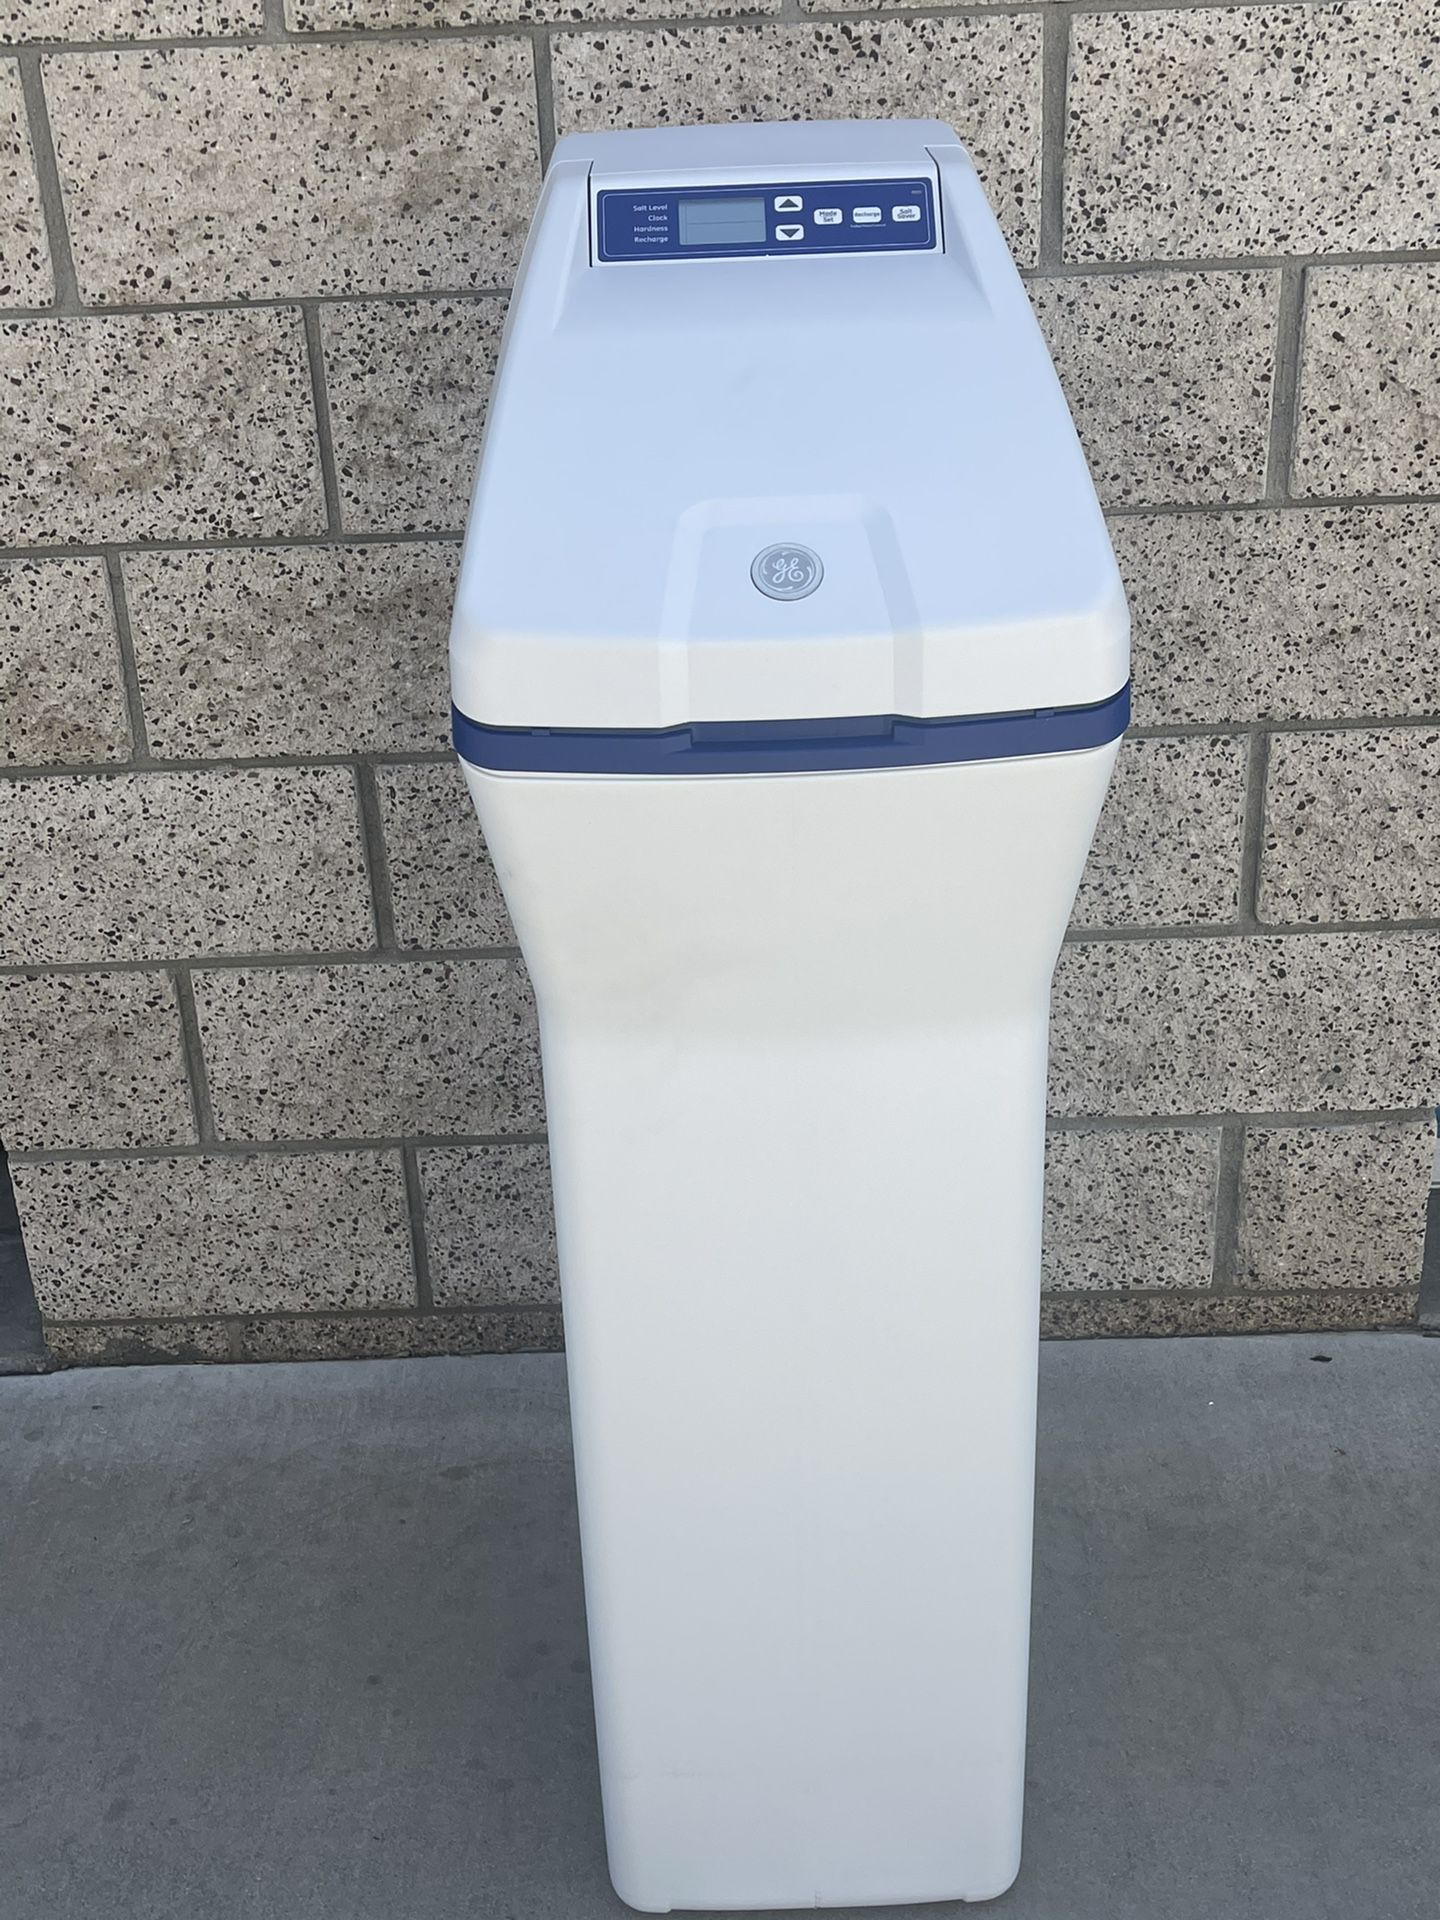 Brand new house water Softener And filter in one Worth $799